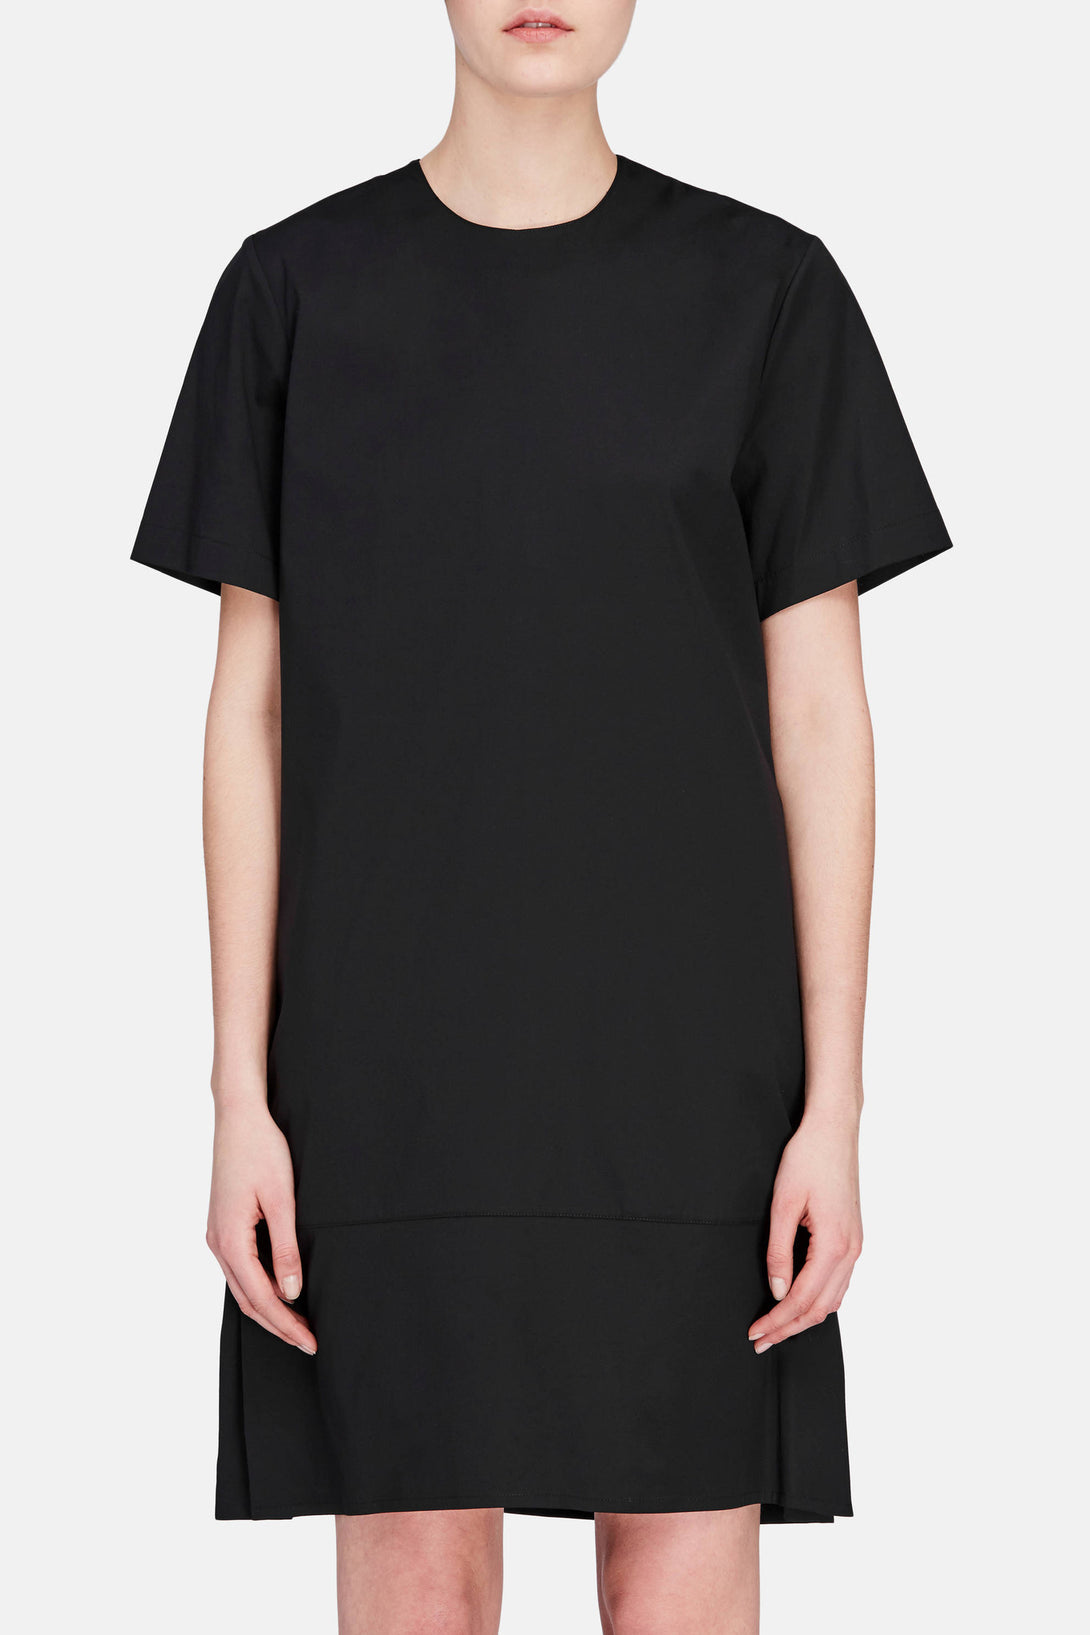 Constrast Shift Dress - Black